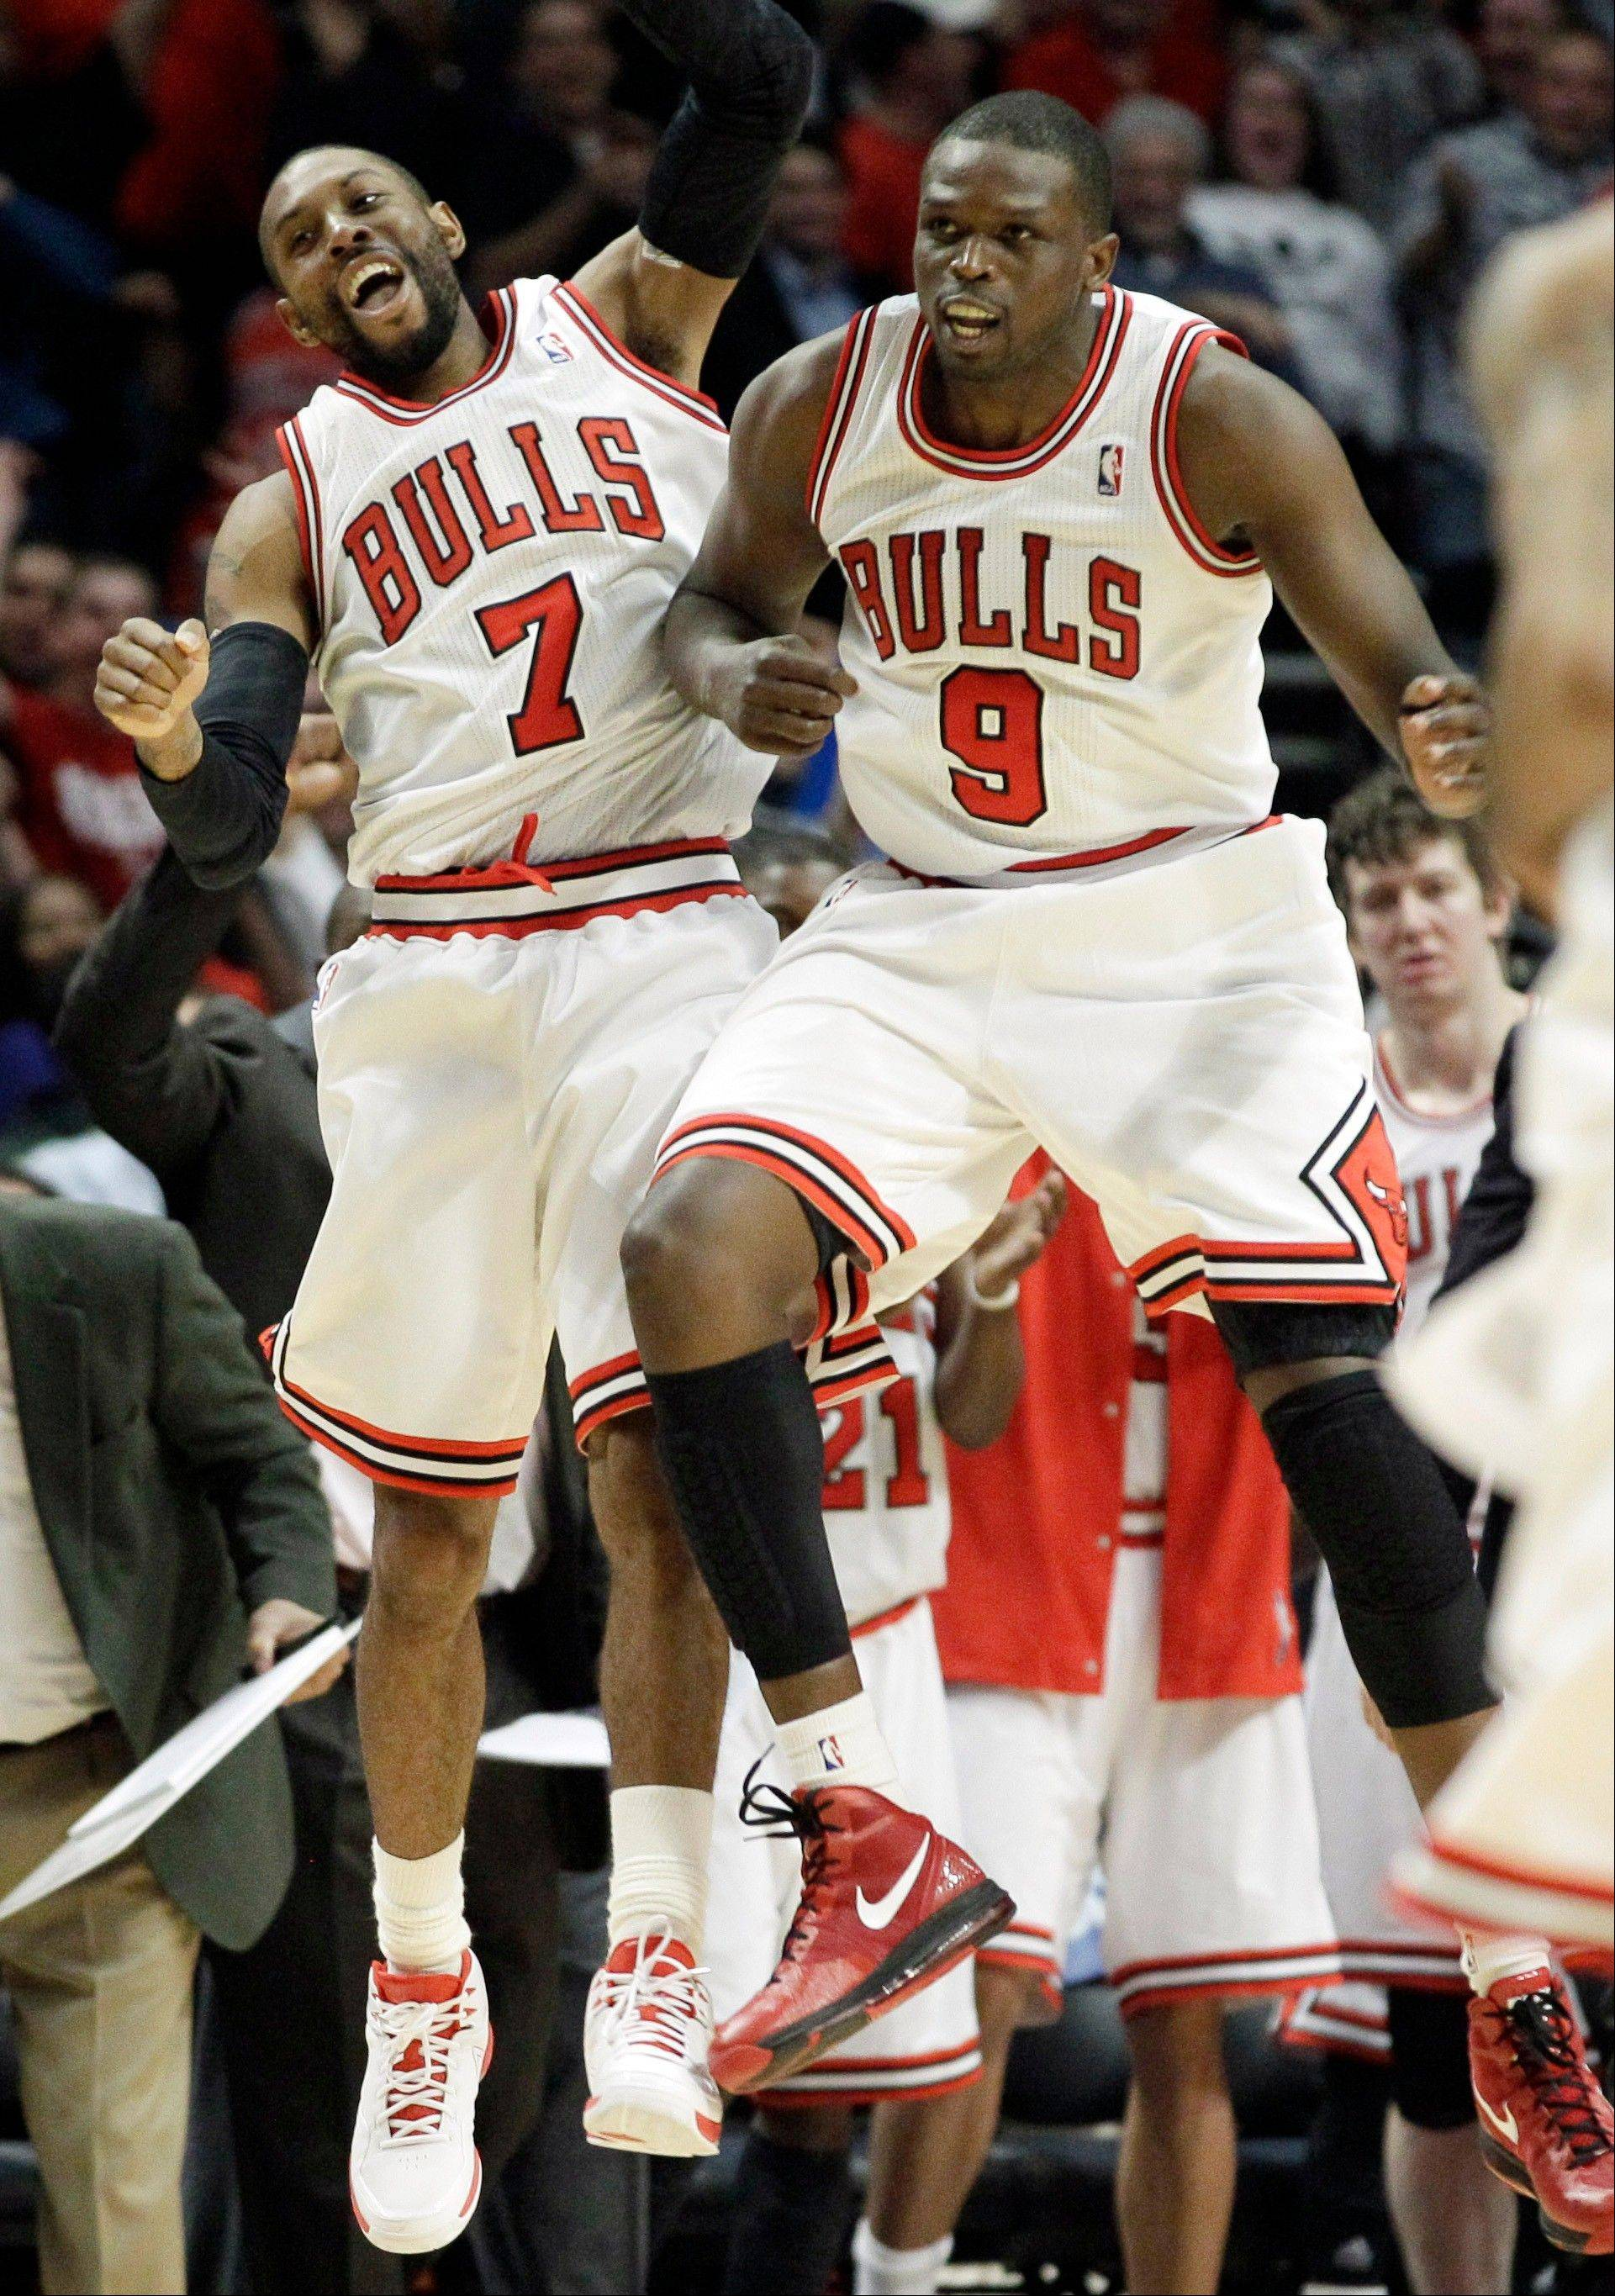 Bulls guard C.J. Watson (7) celebrates with forward Luol Deng (9) after Watson scored a 3-point basket during the second half Thursday night.